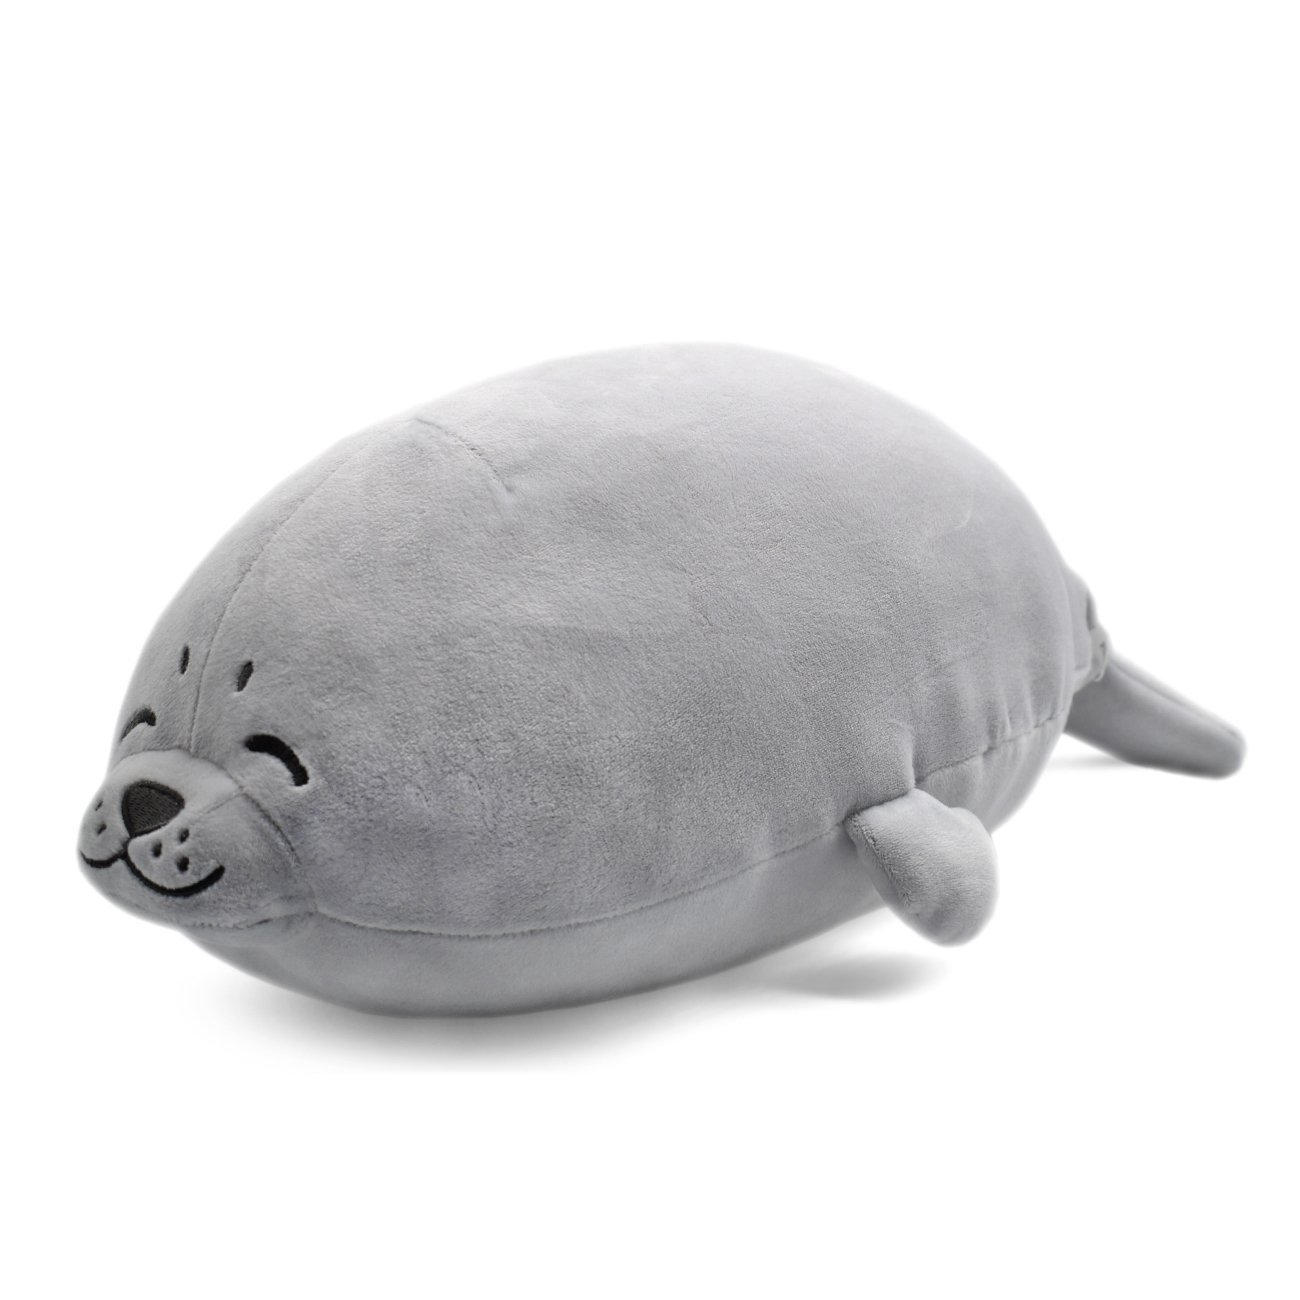 Plush Cute Seal Pillow - Stuffed Cotton Soft Animal Toy Grey 16.5 inch/45cm (Small) Gift For Kid/Nephew/Niece On Children's Day